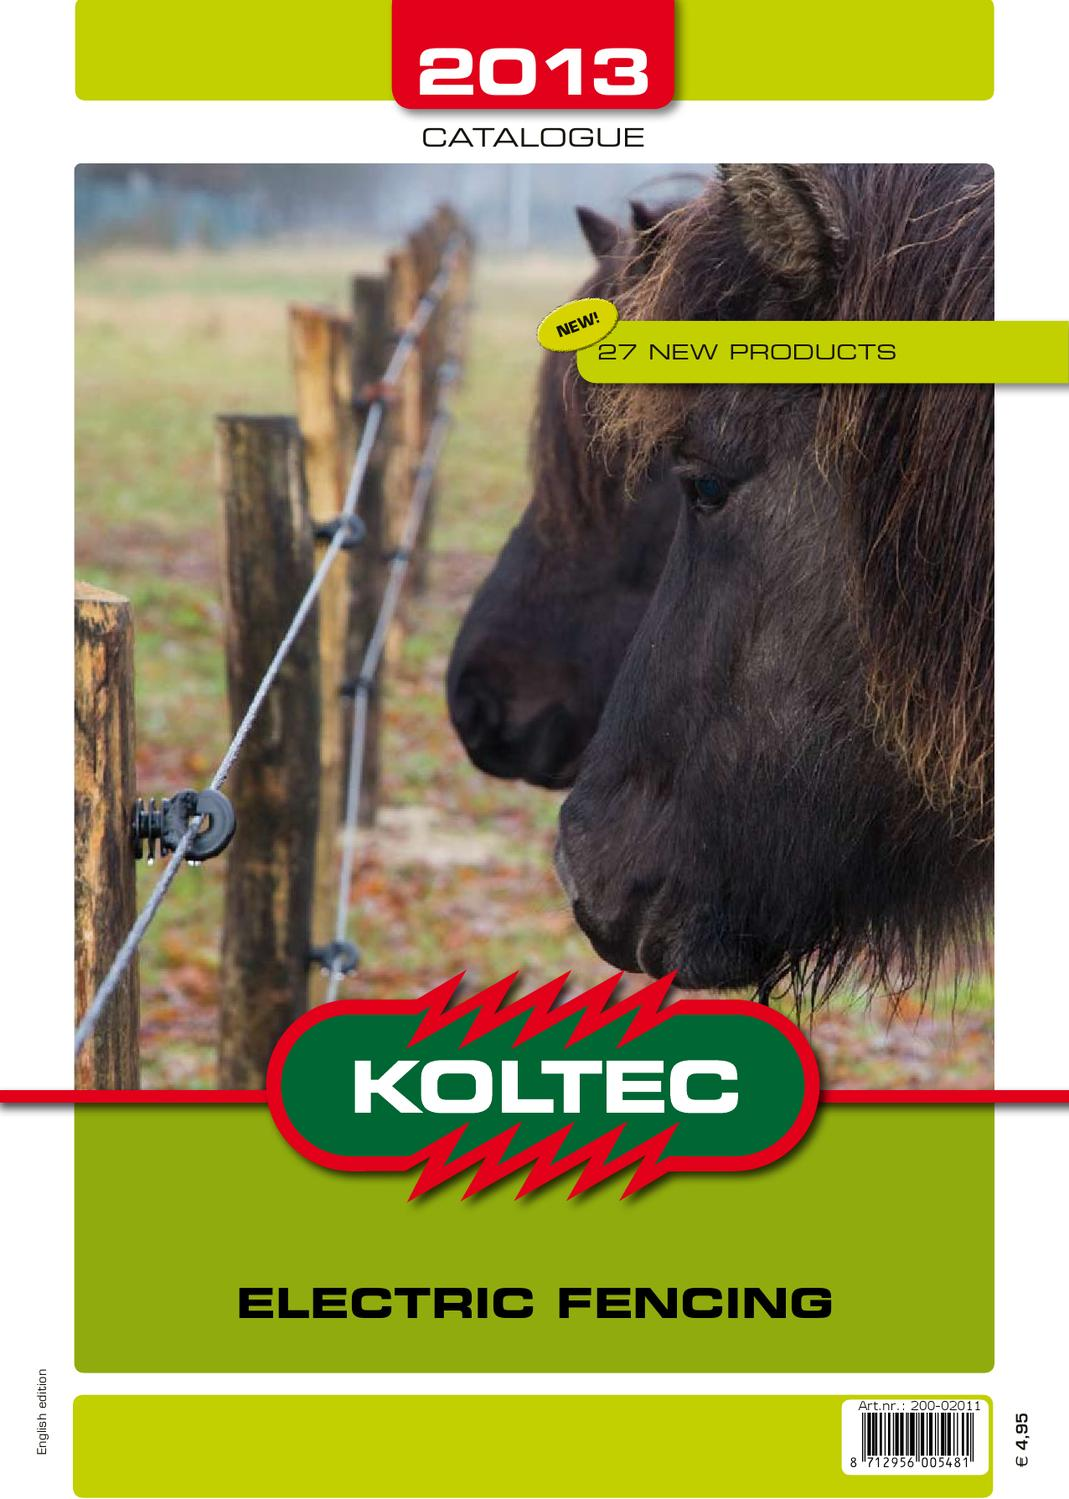 Koltec Catalogue 2013 By Hilko Dammer Issuu Electric Fence Wire Joiner 25pcs